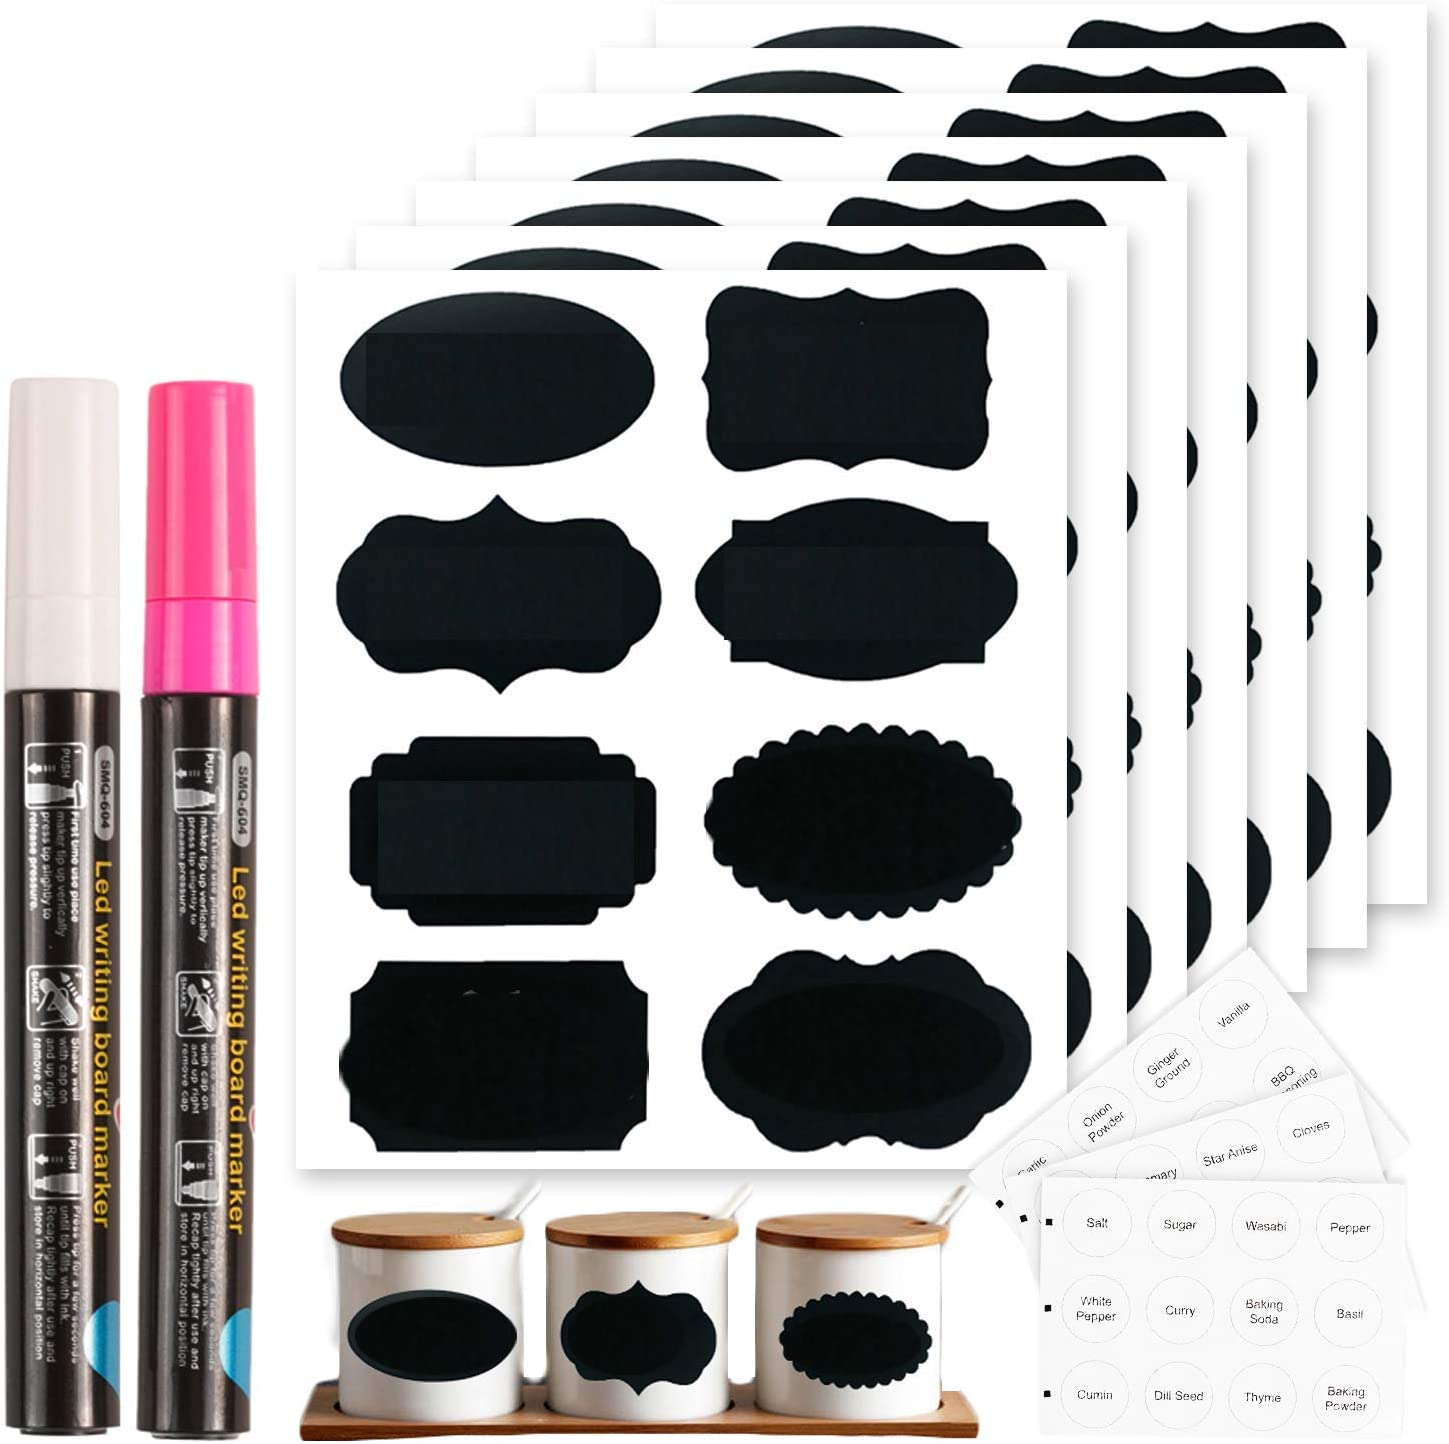 Chalkboard Labels Set, Tebik 289 Pack Large Medium and Small Chalkboard Stickers, Chalk Markers & Spice Labels Reusable for Home Office School Bars Shops Pantry Storage Jars Glass Bottles Crafts